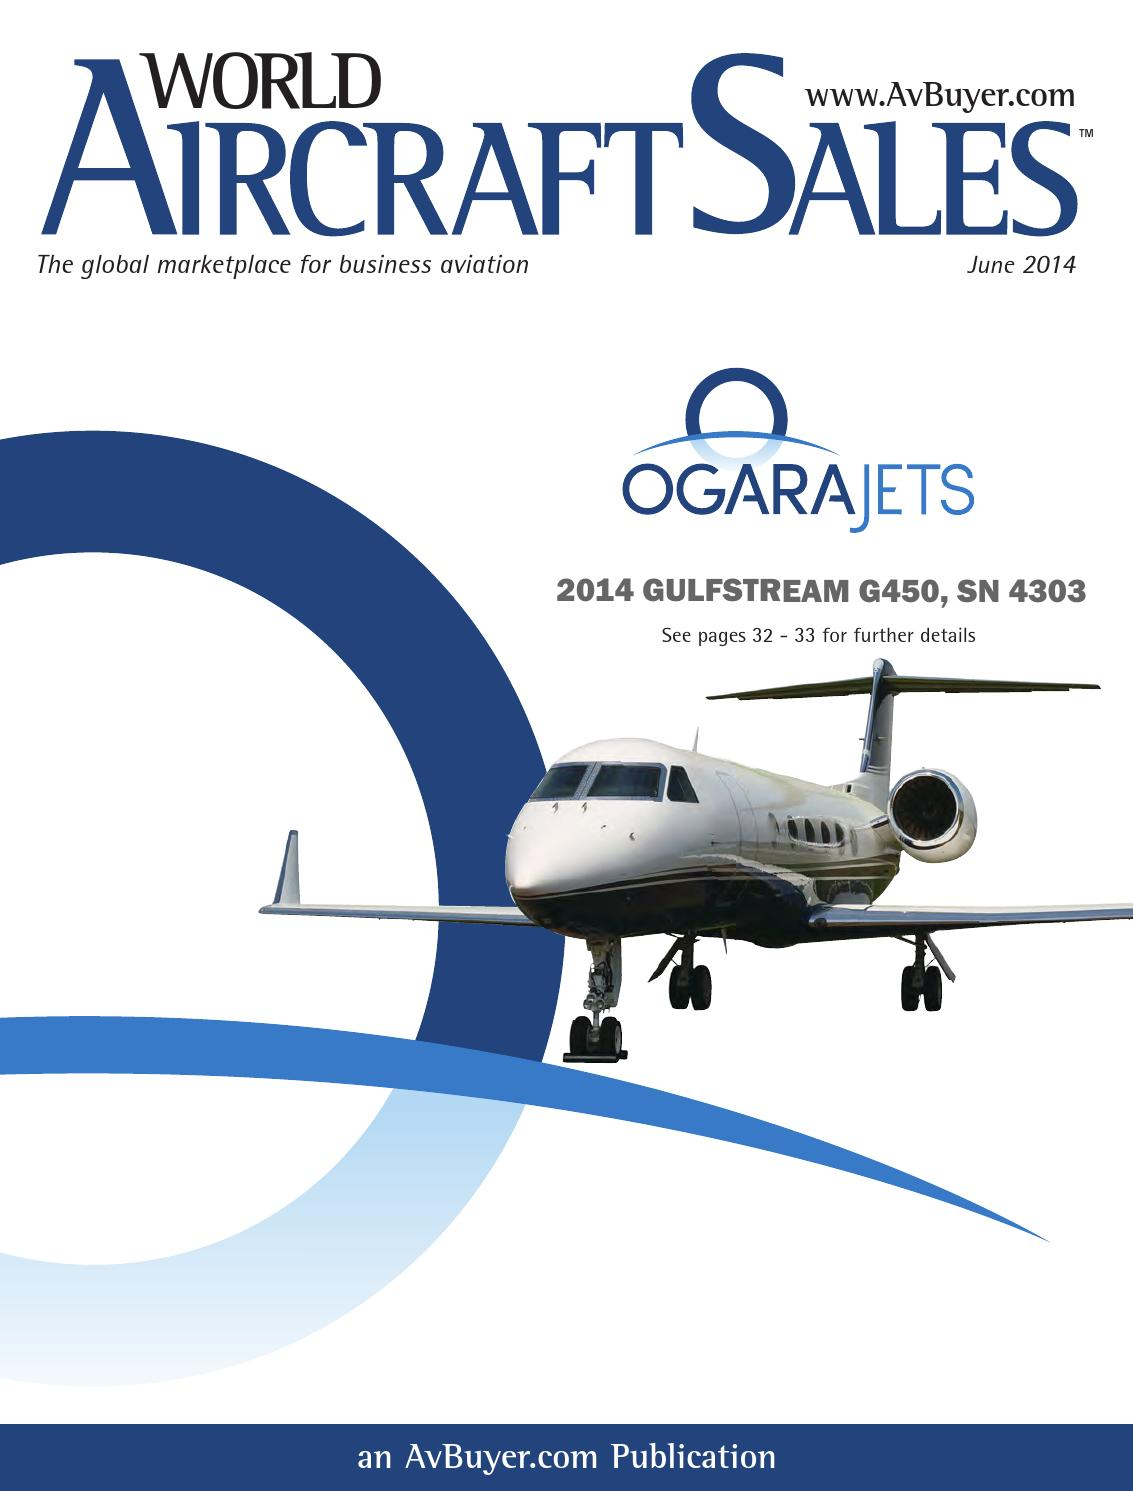 World Aircraft Sales Magazine June 2014 by AvBuyer Ltd  - issuu